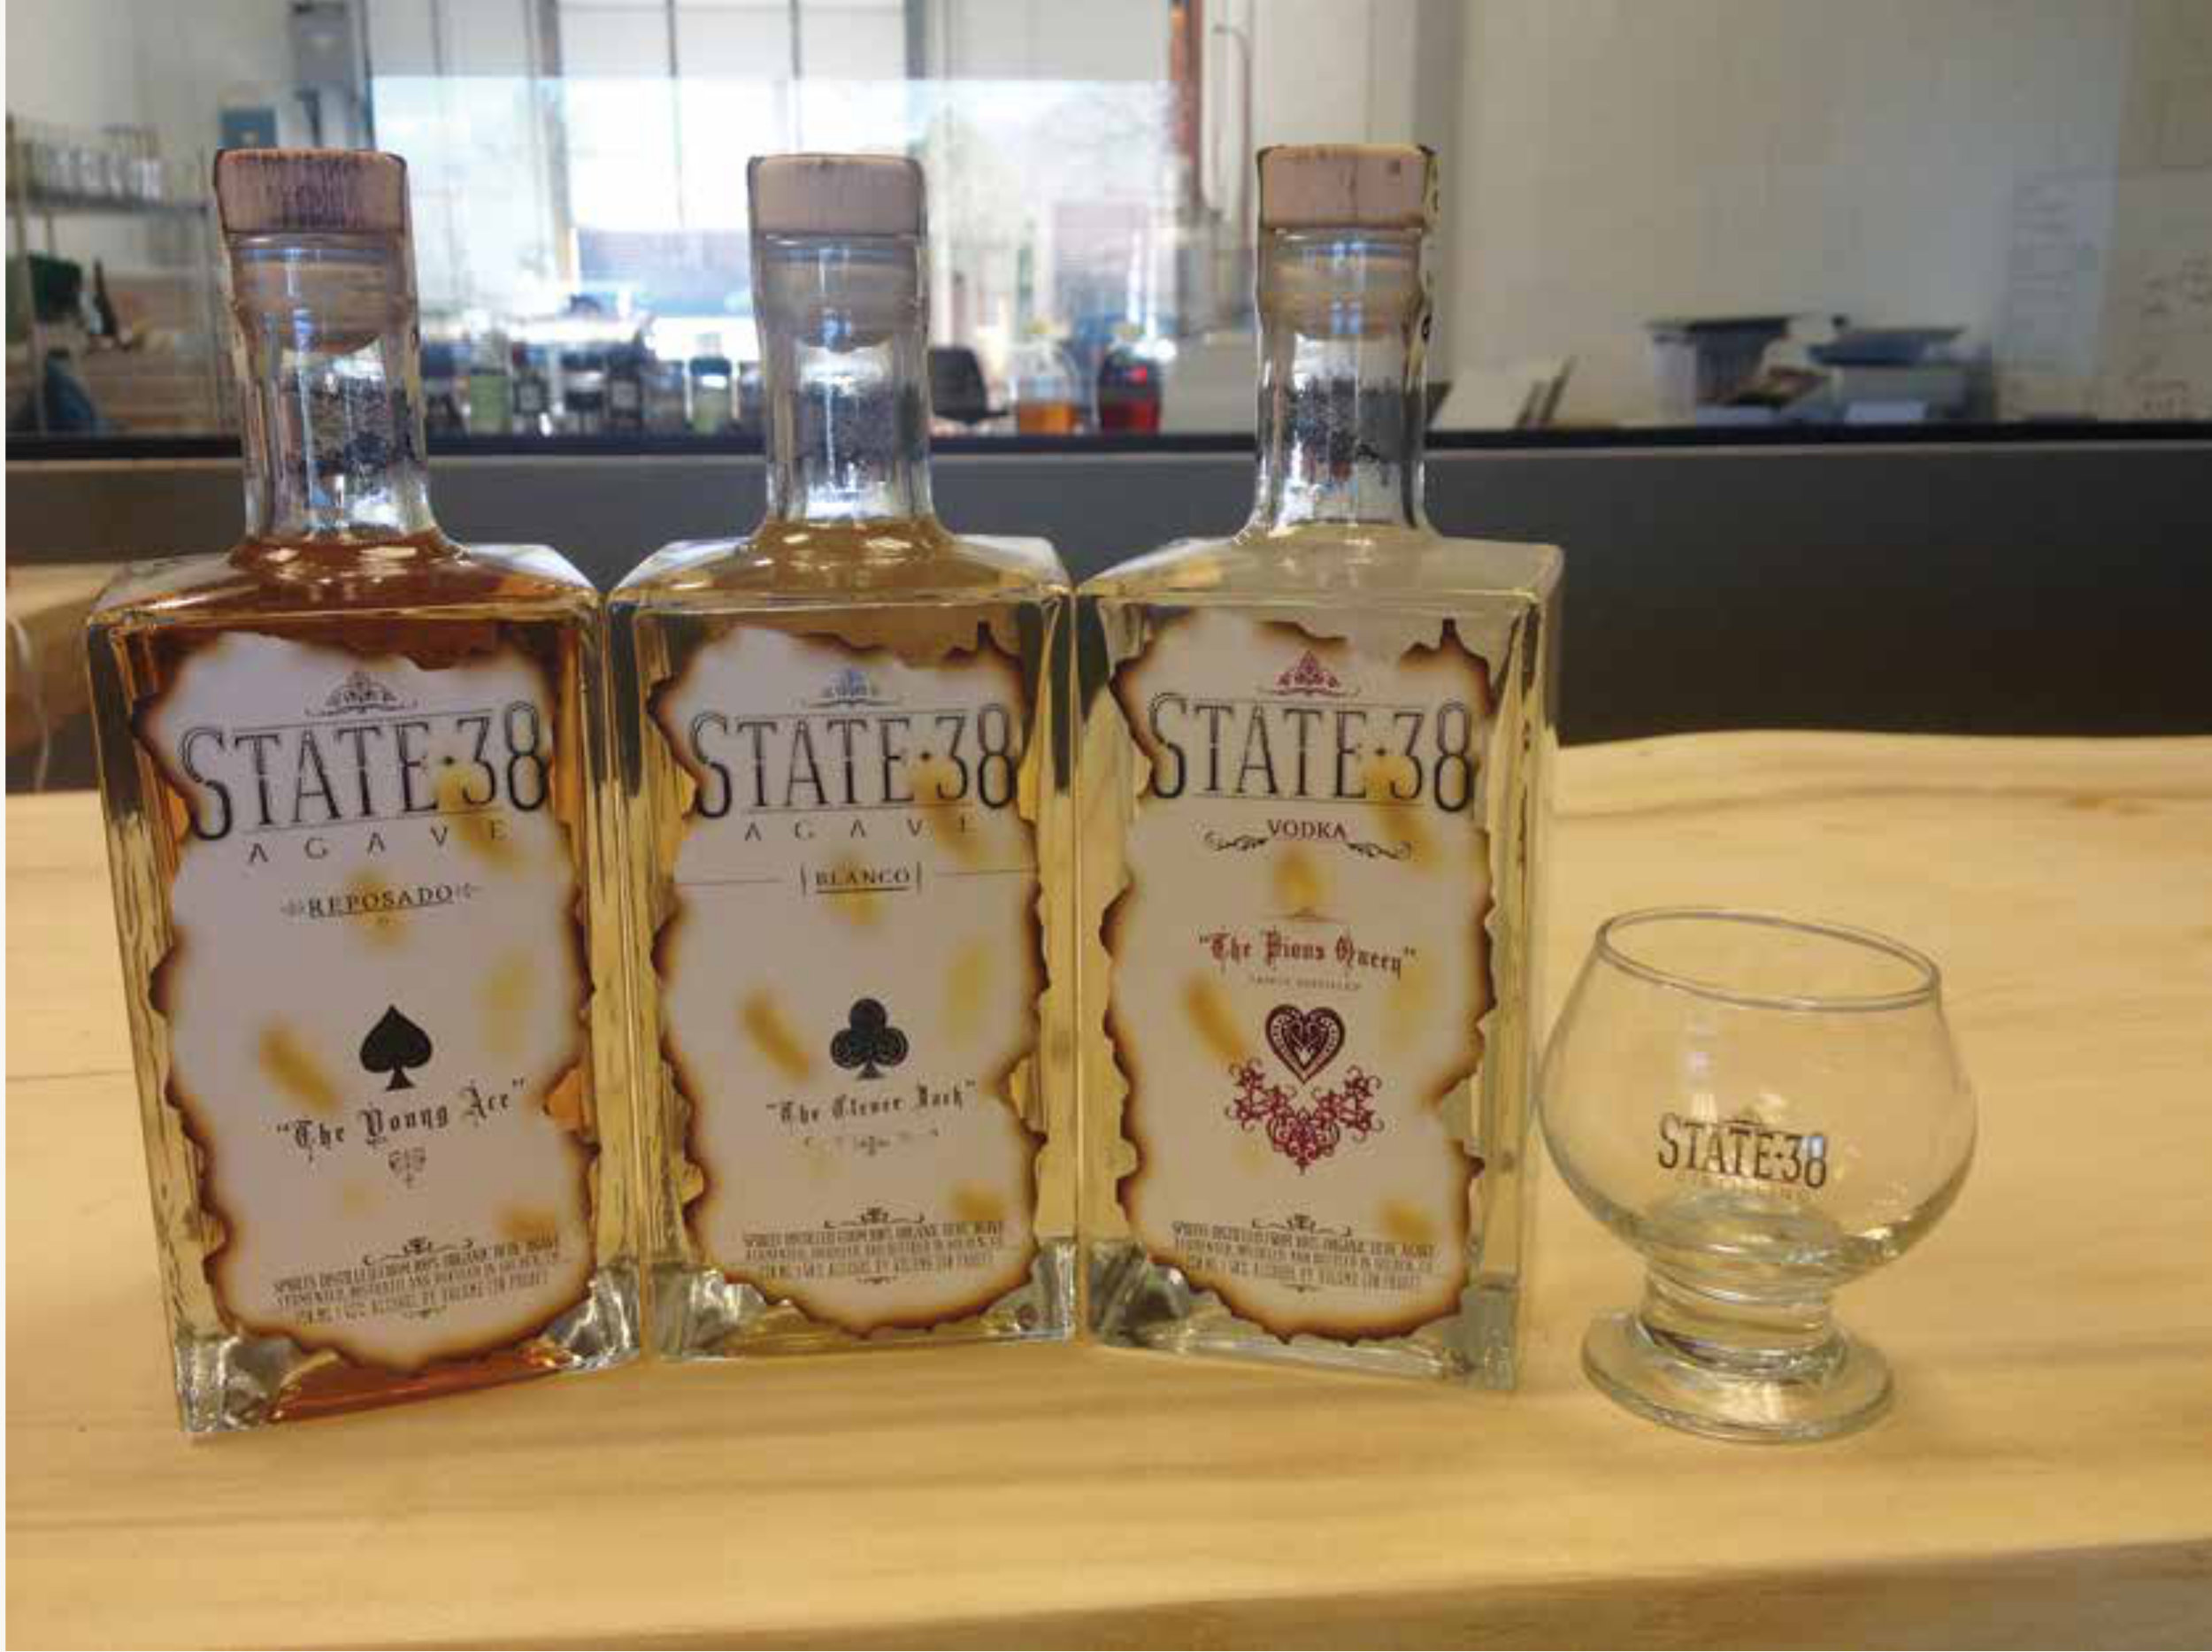 The Young Ace, reposado agave spirit, The Clever Jack blanco agave spirit and The Pious Queen vodka are part of the agave-centric spirits line distilled at State 38. The distillery also makes an agave-based gin. Photo courtesy of State 38 Distilling